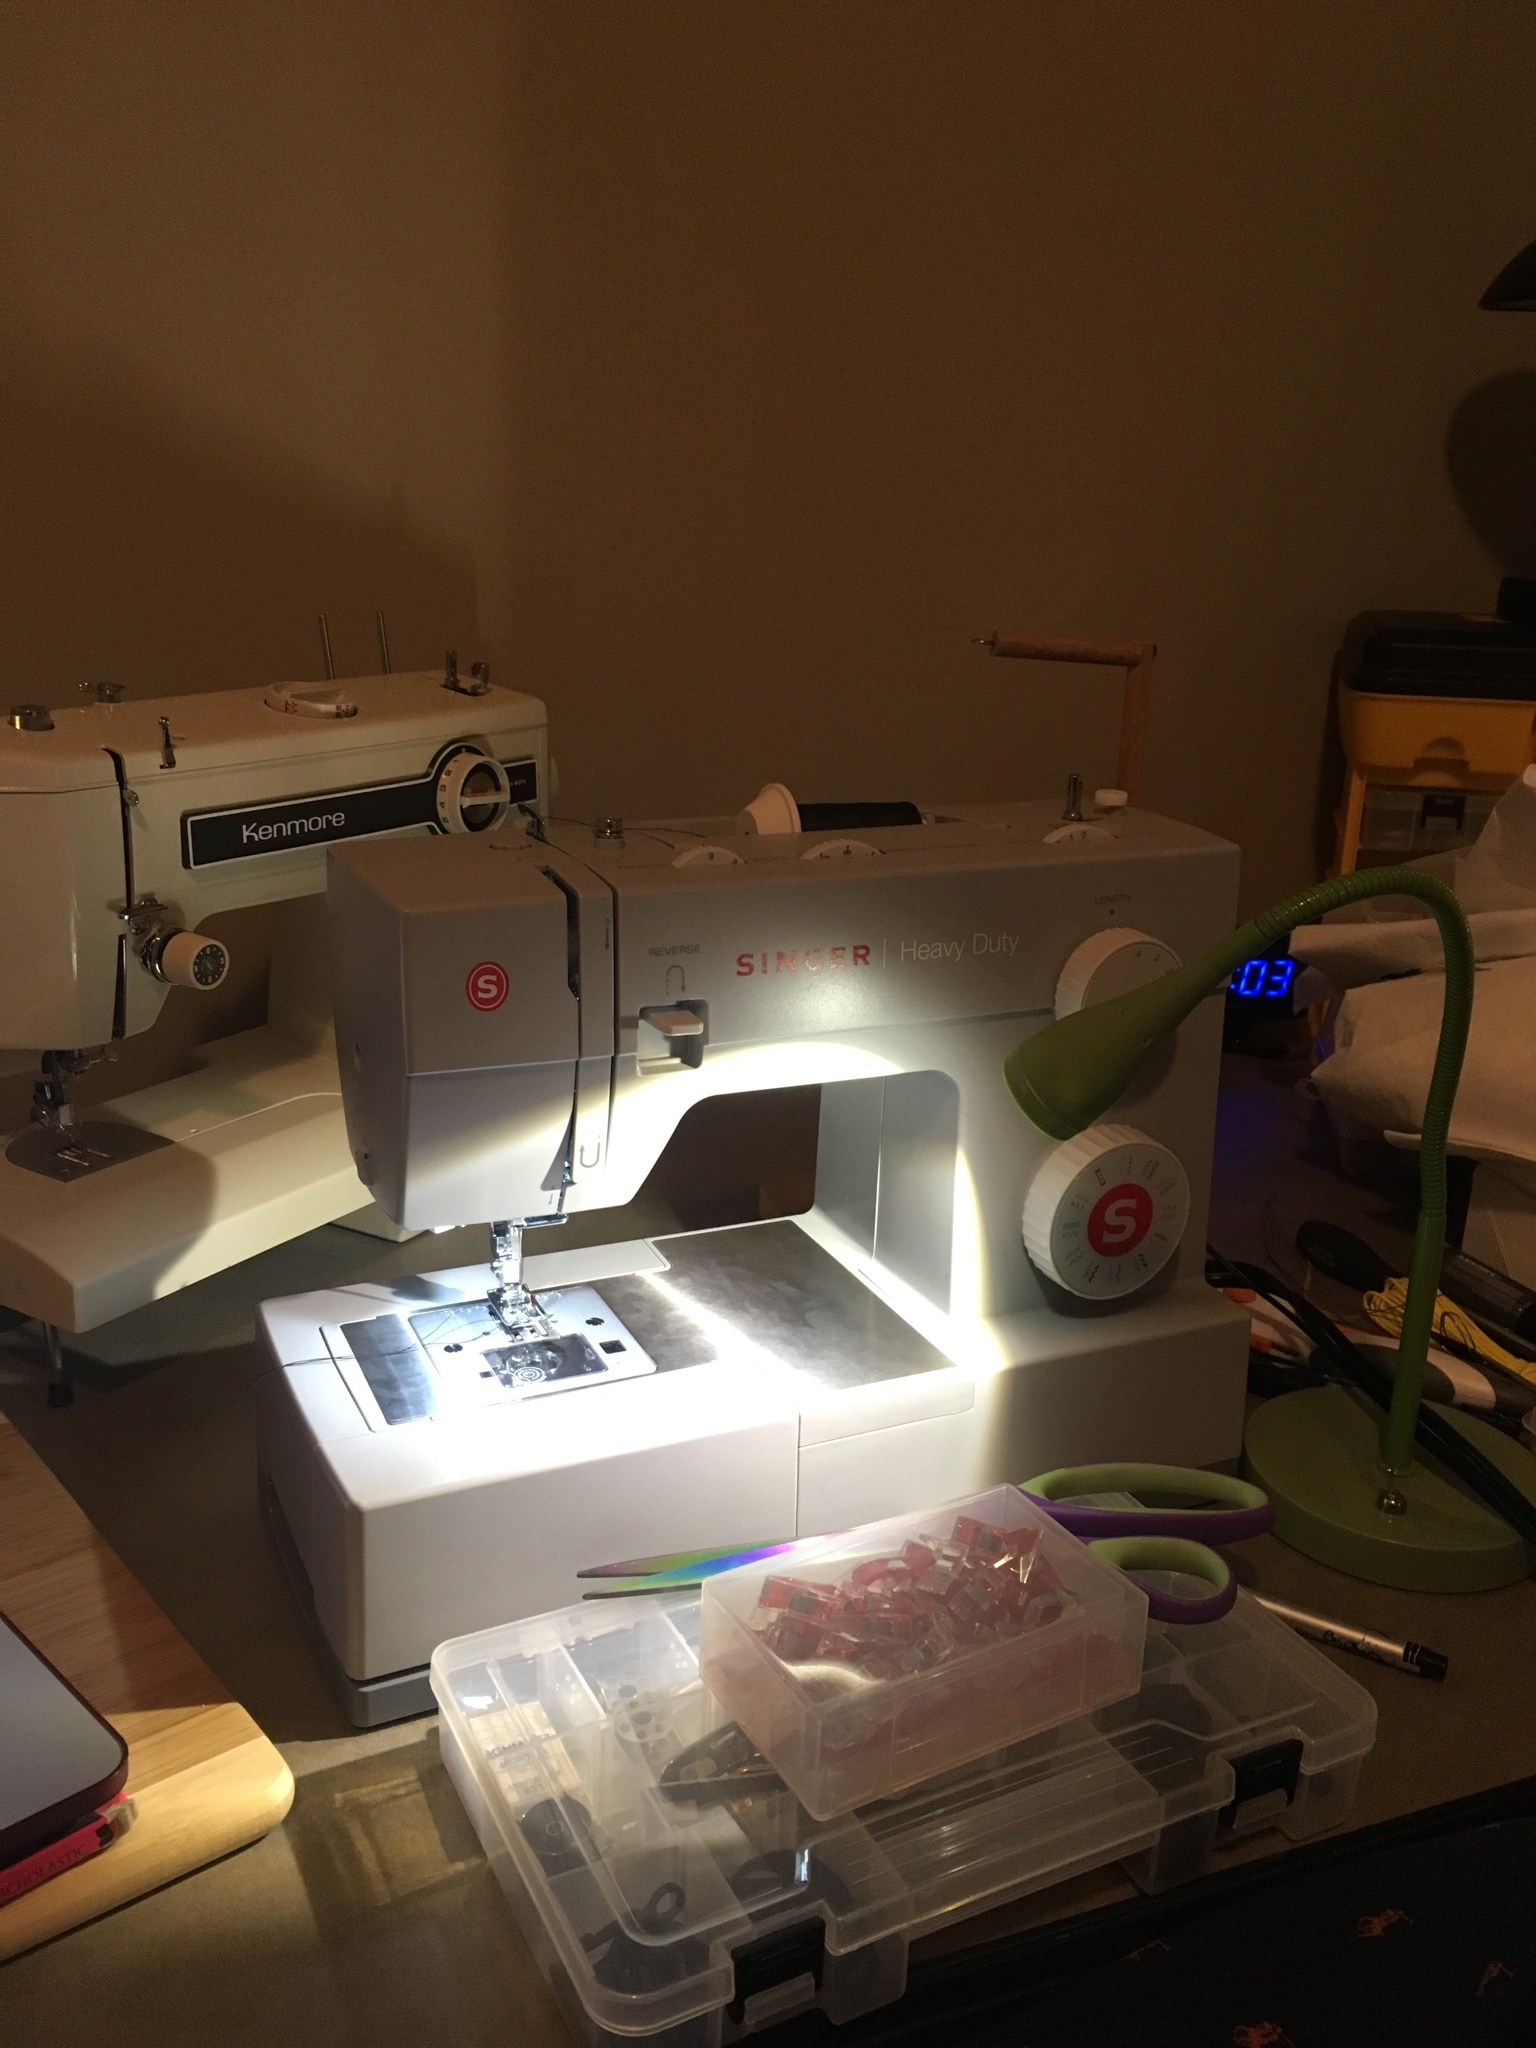 hight resolution of update just got the machine today and man am i impressed for 130 it sews like a dream when i first got the kenmore you see in the background i fought